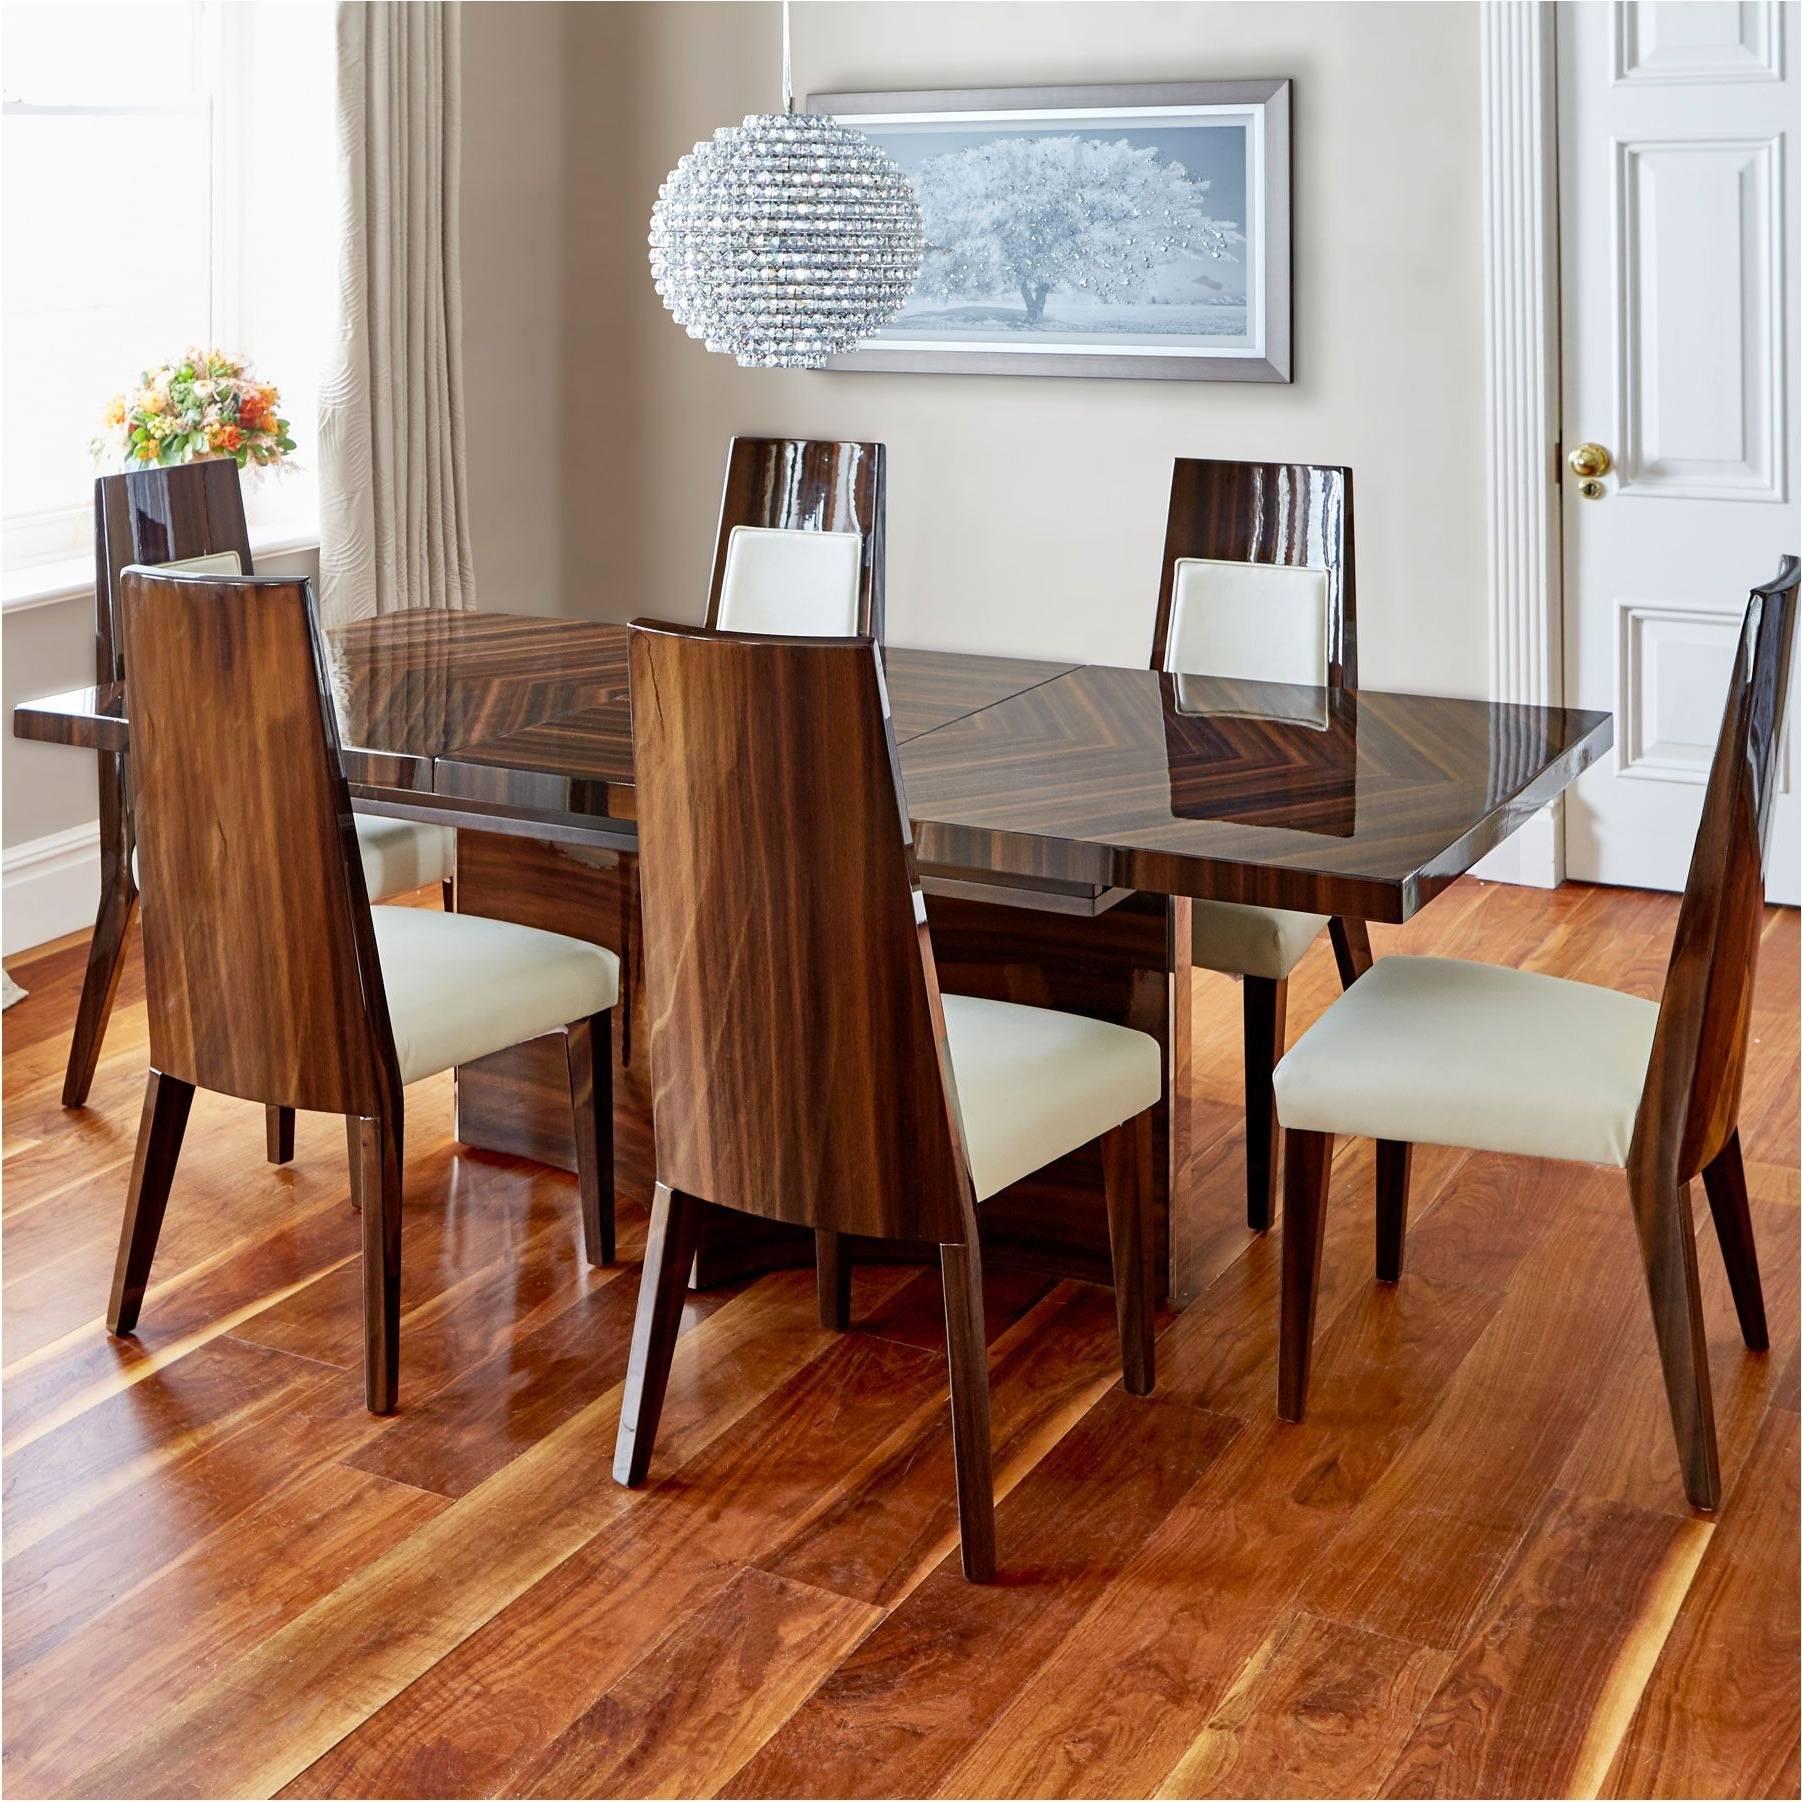 Walnut Dining Table And 6 Chairs Inside Most Popular Best Alexis High Gloss Walnut Dining Table And 6 Chairs – Walnut (View 13 of 25)